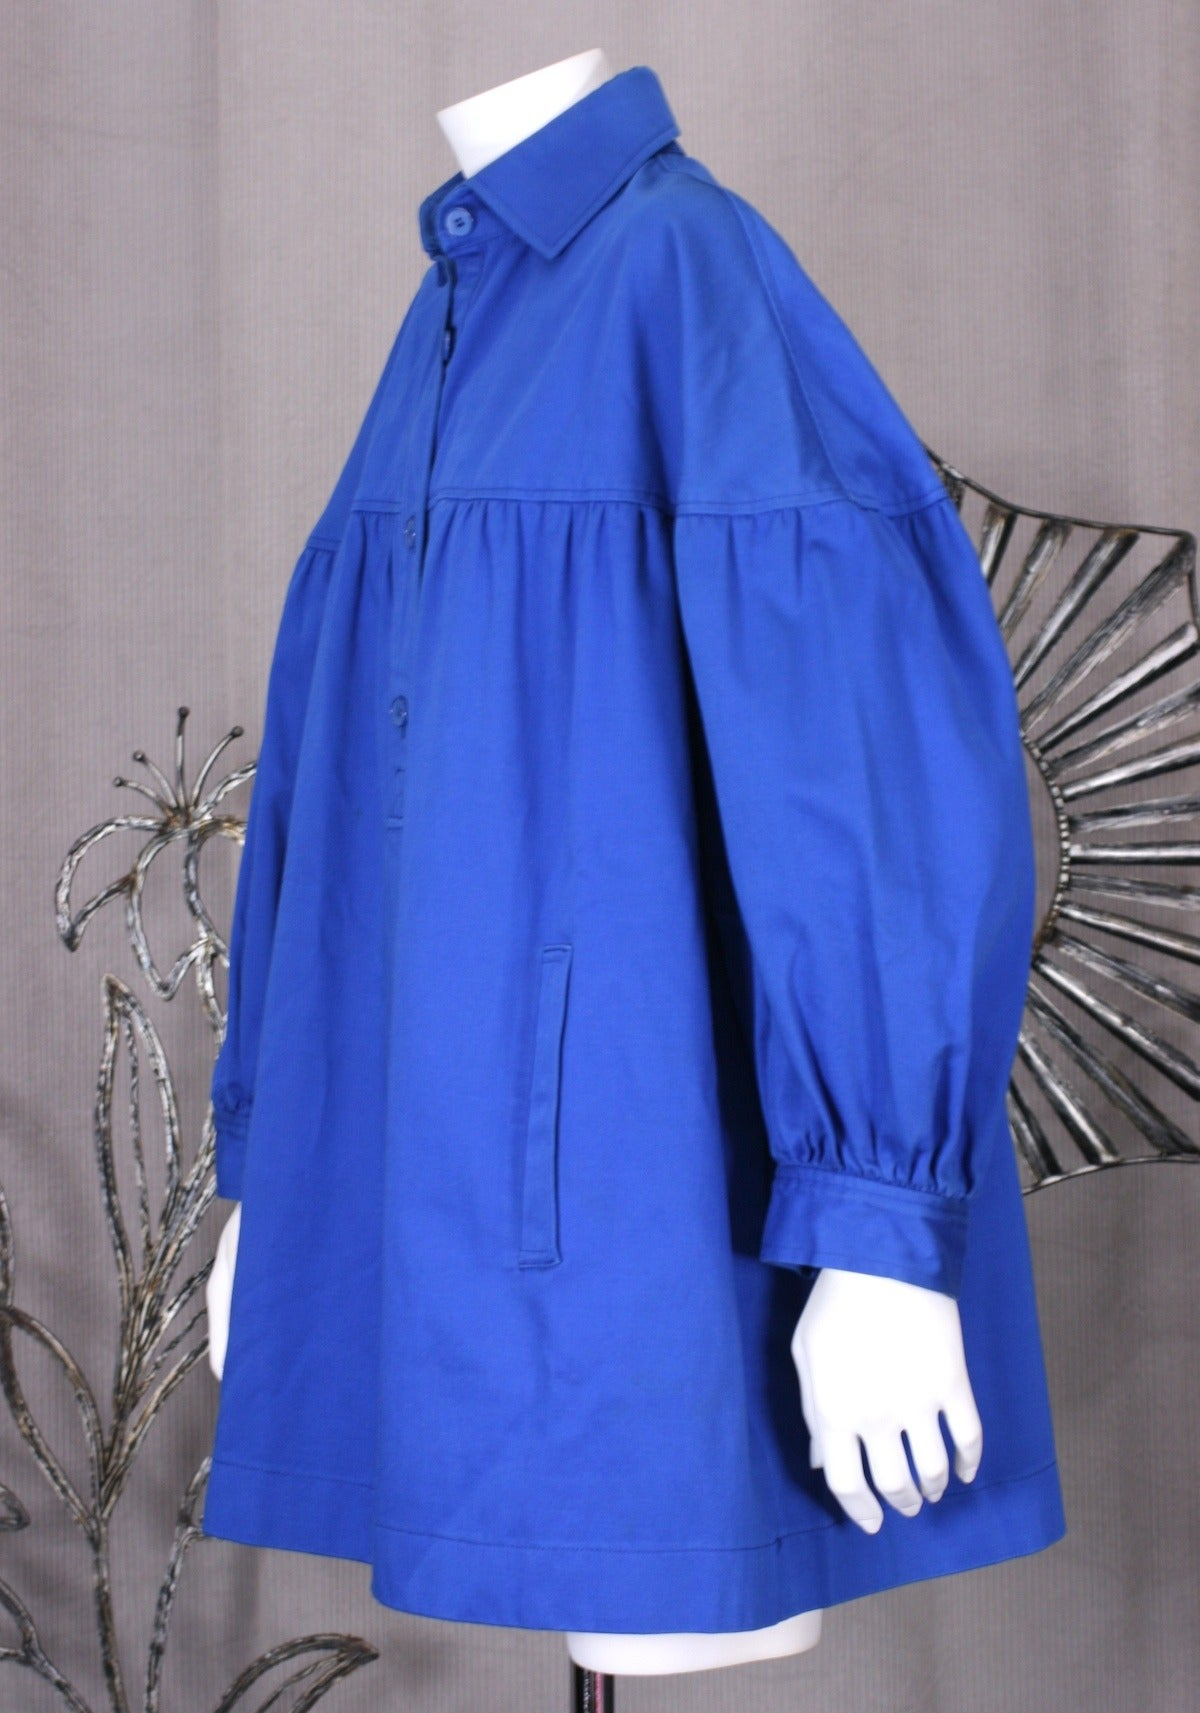 YSL French blue cotton twill blouse based on French peasant smocks. He has reproportioned the design elements of the blouse and added slash pockets. Front button placket with full gathered sleeves which end at a large cuff.